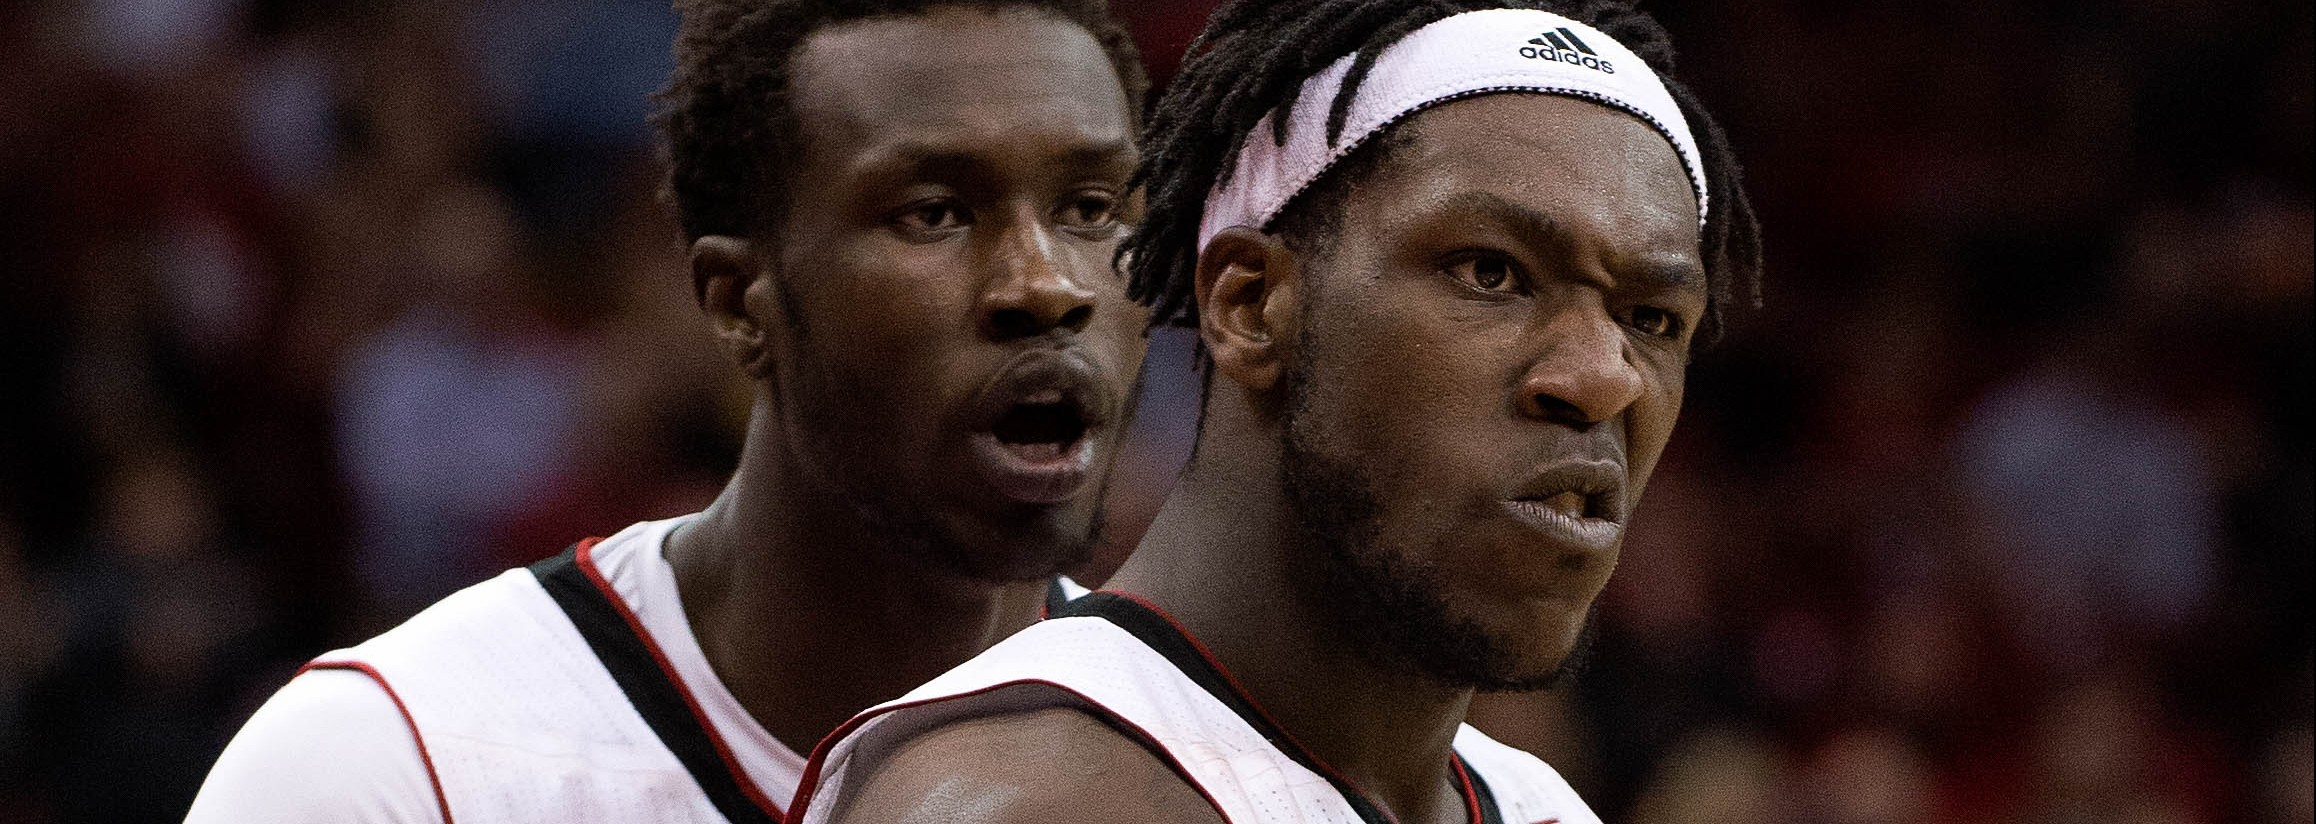 Montrezl Harrell, Mangok Mathiang Louisville vs. Pittsburgh 2-11-2015 Photo by Adam Creech Fitted